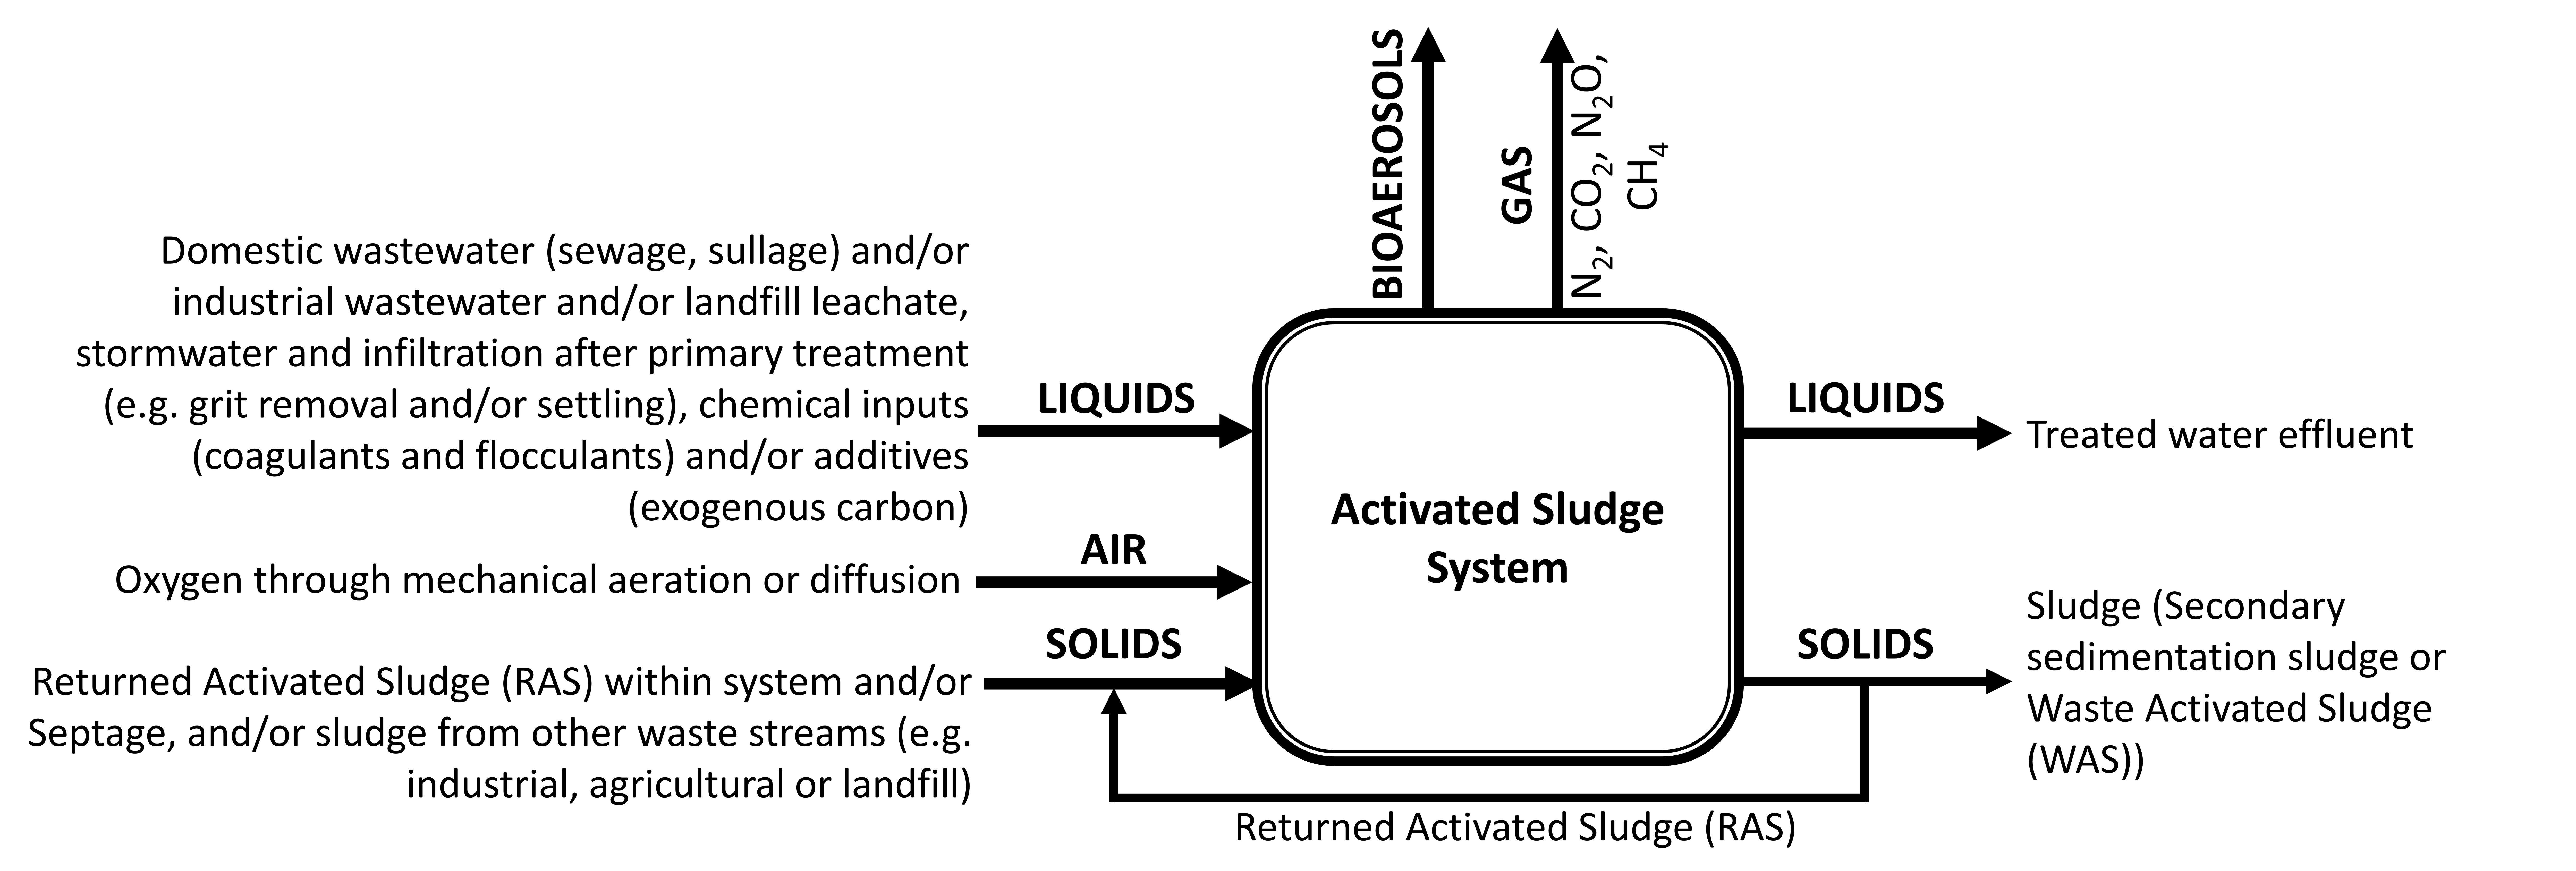 Activated sludge global water pathogen project 30 factors affecting pathogens in activated sludge systems pooptronica Images